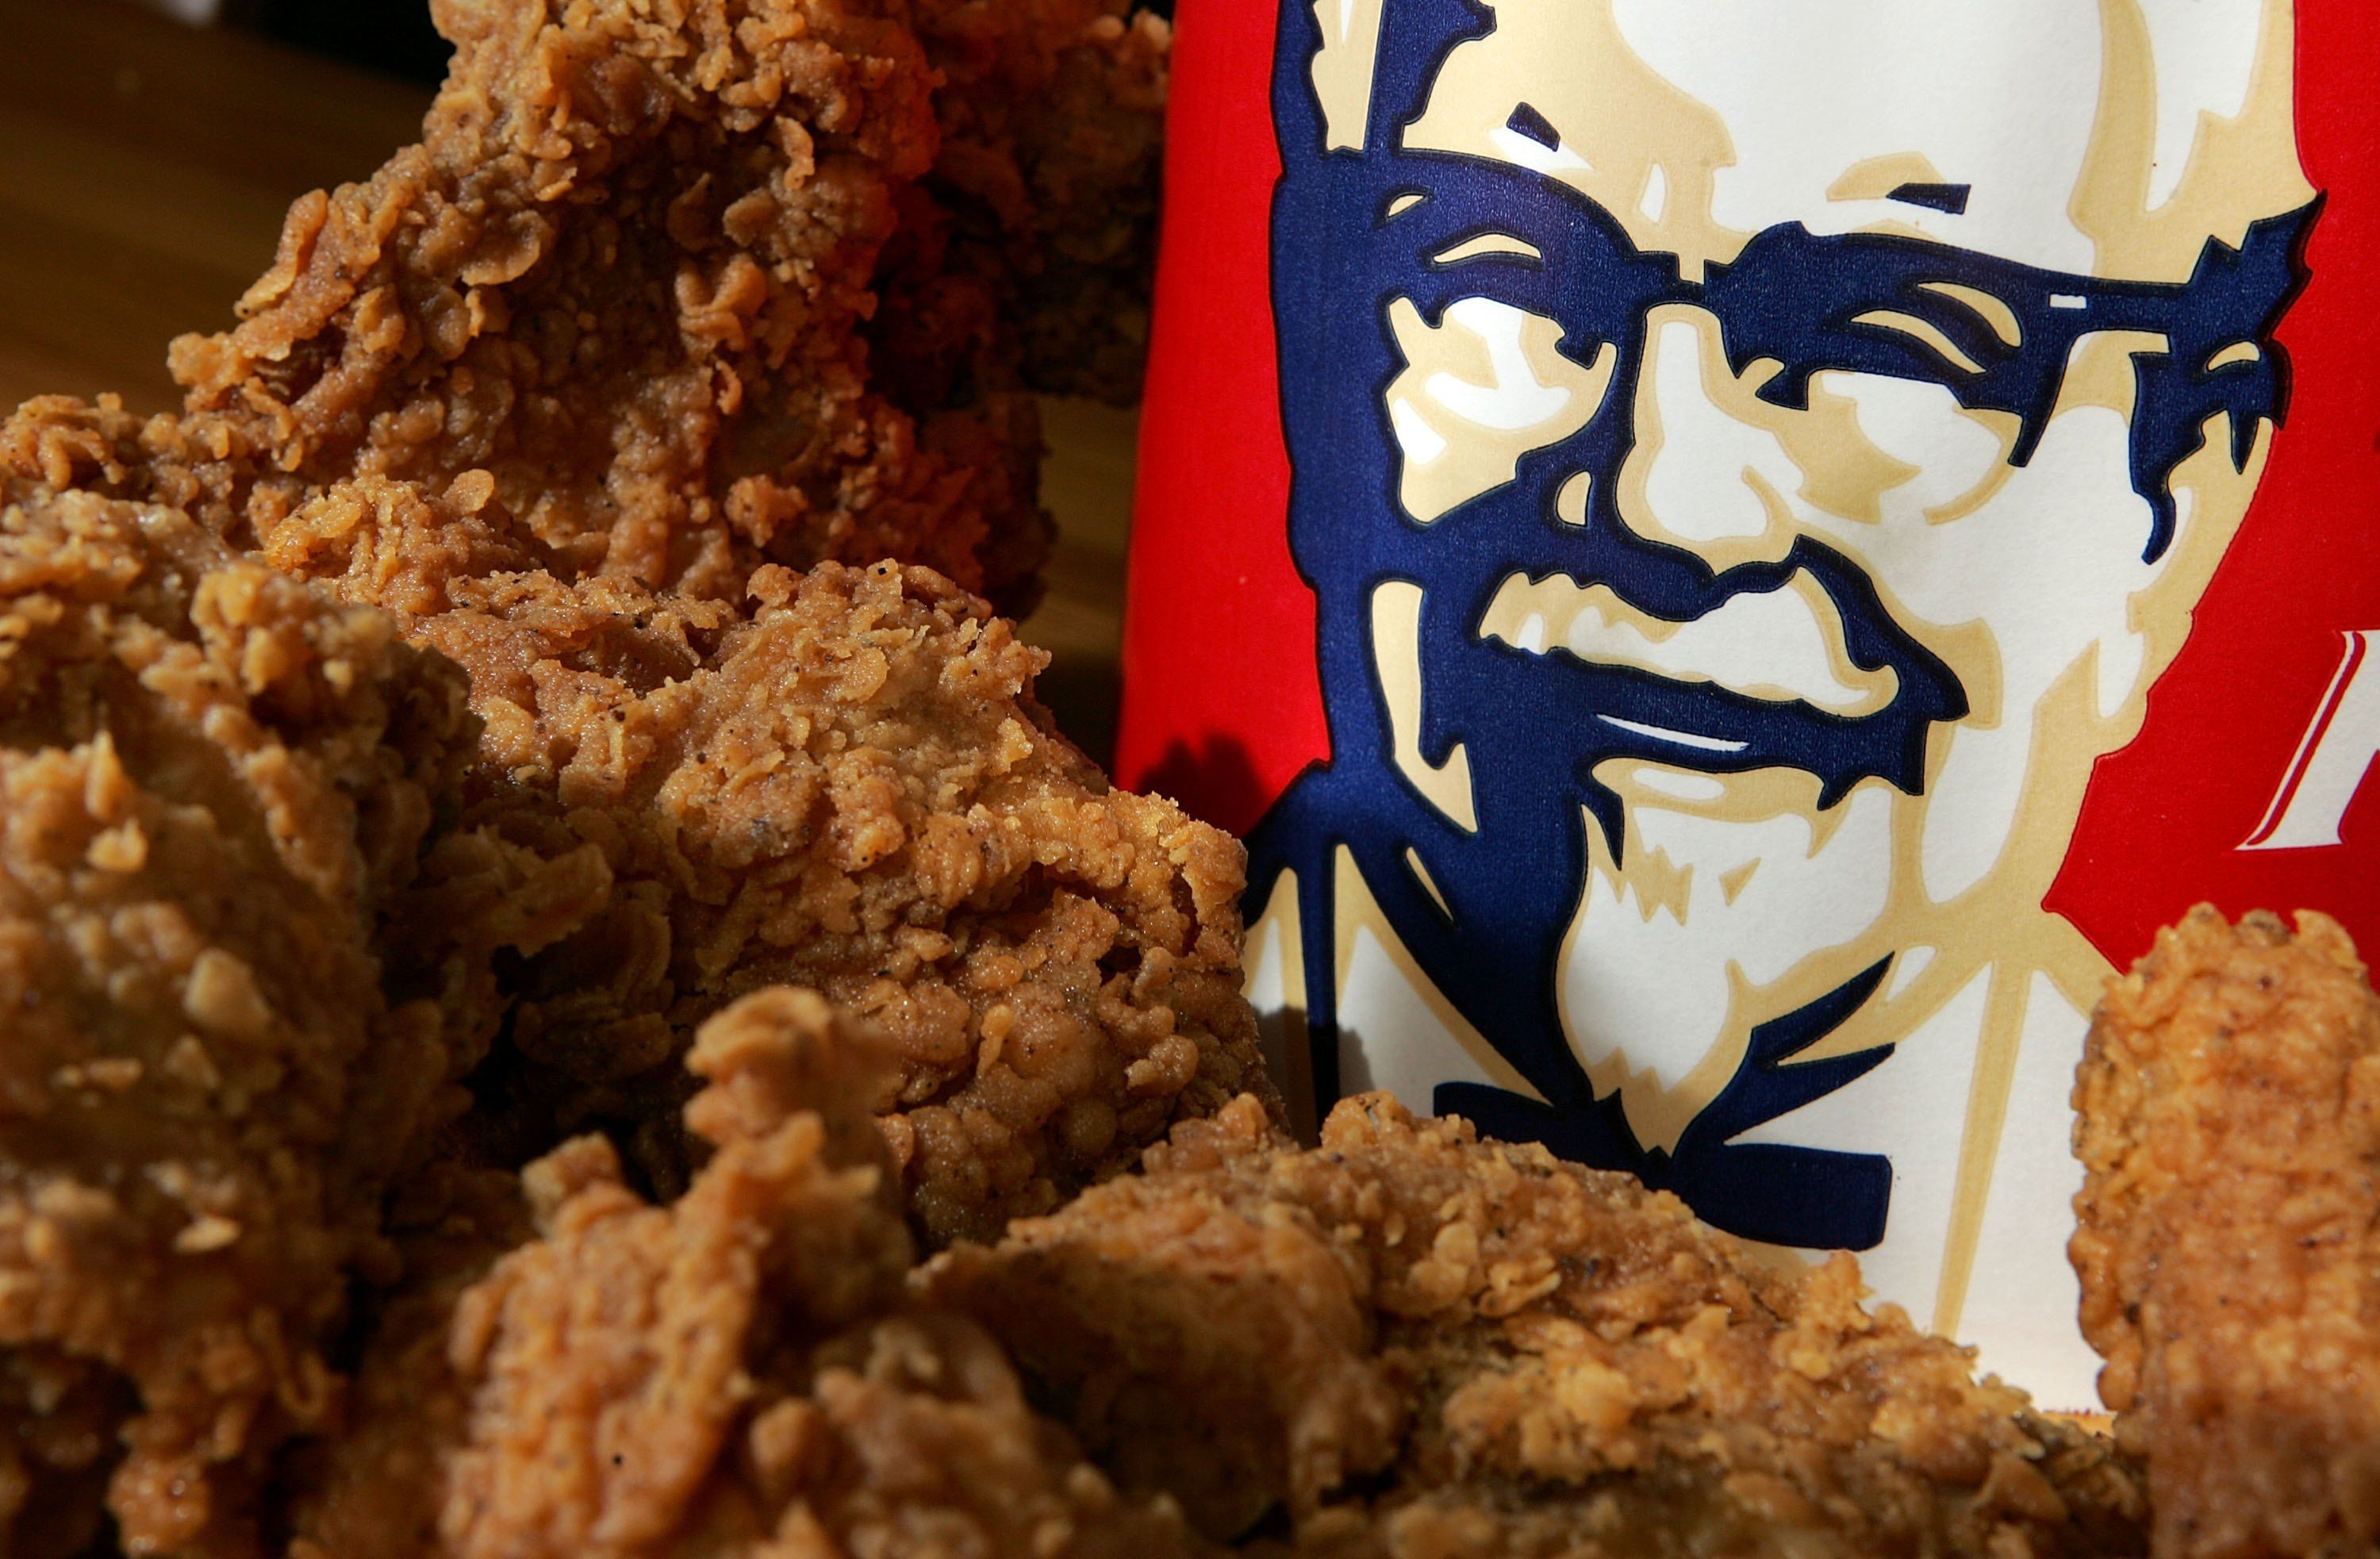 KFC Admits To Trying (And Failing!) To Sell Healthier Food